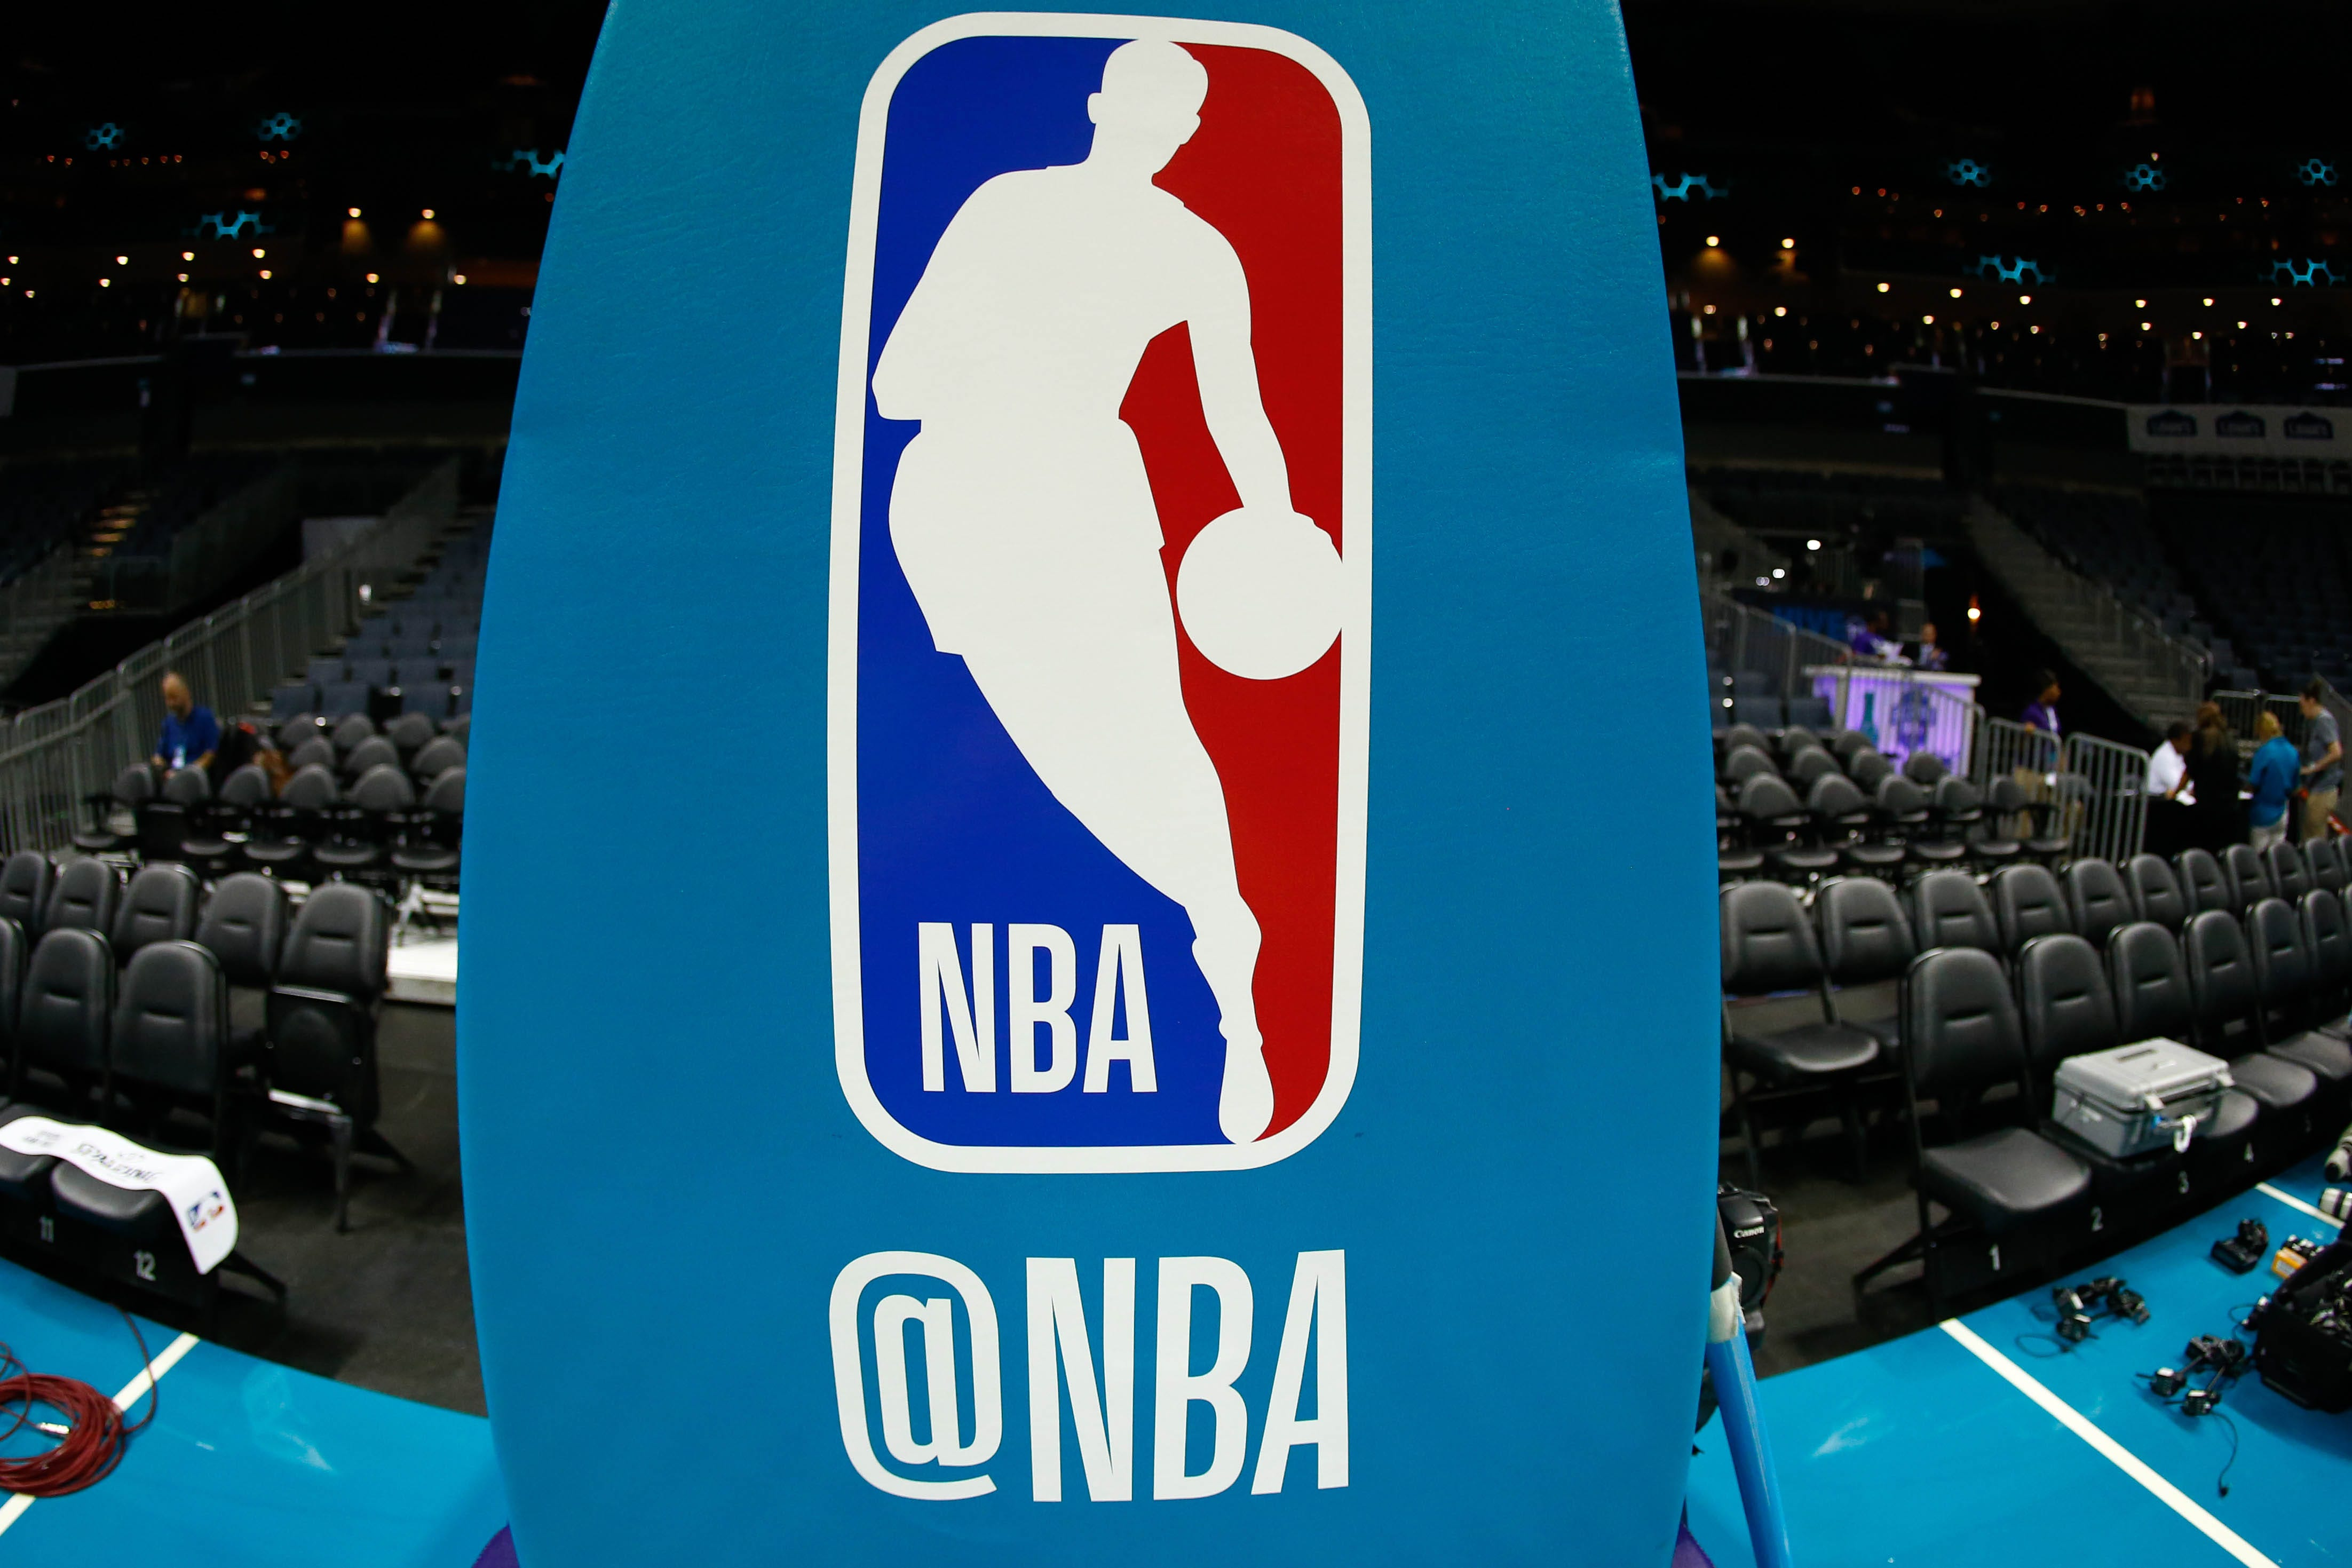 NBA is targeting start date of Dec. 22 for the 2020-21 season